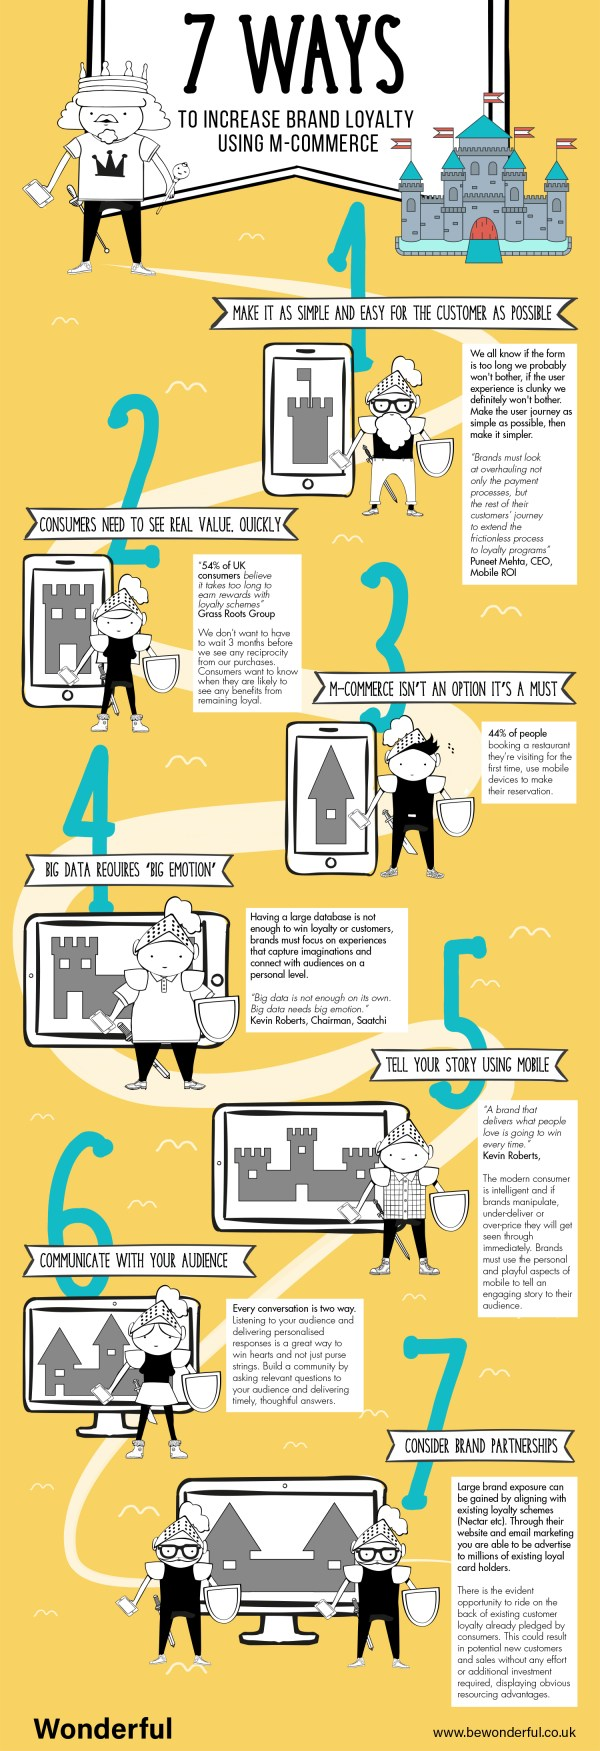 7 Ways To Increase Brand Loyalty Using M-Commerce [Infographic] - Wonderful Creative Agency Infographic